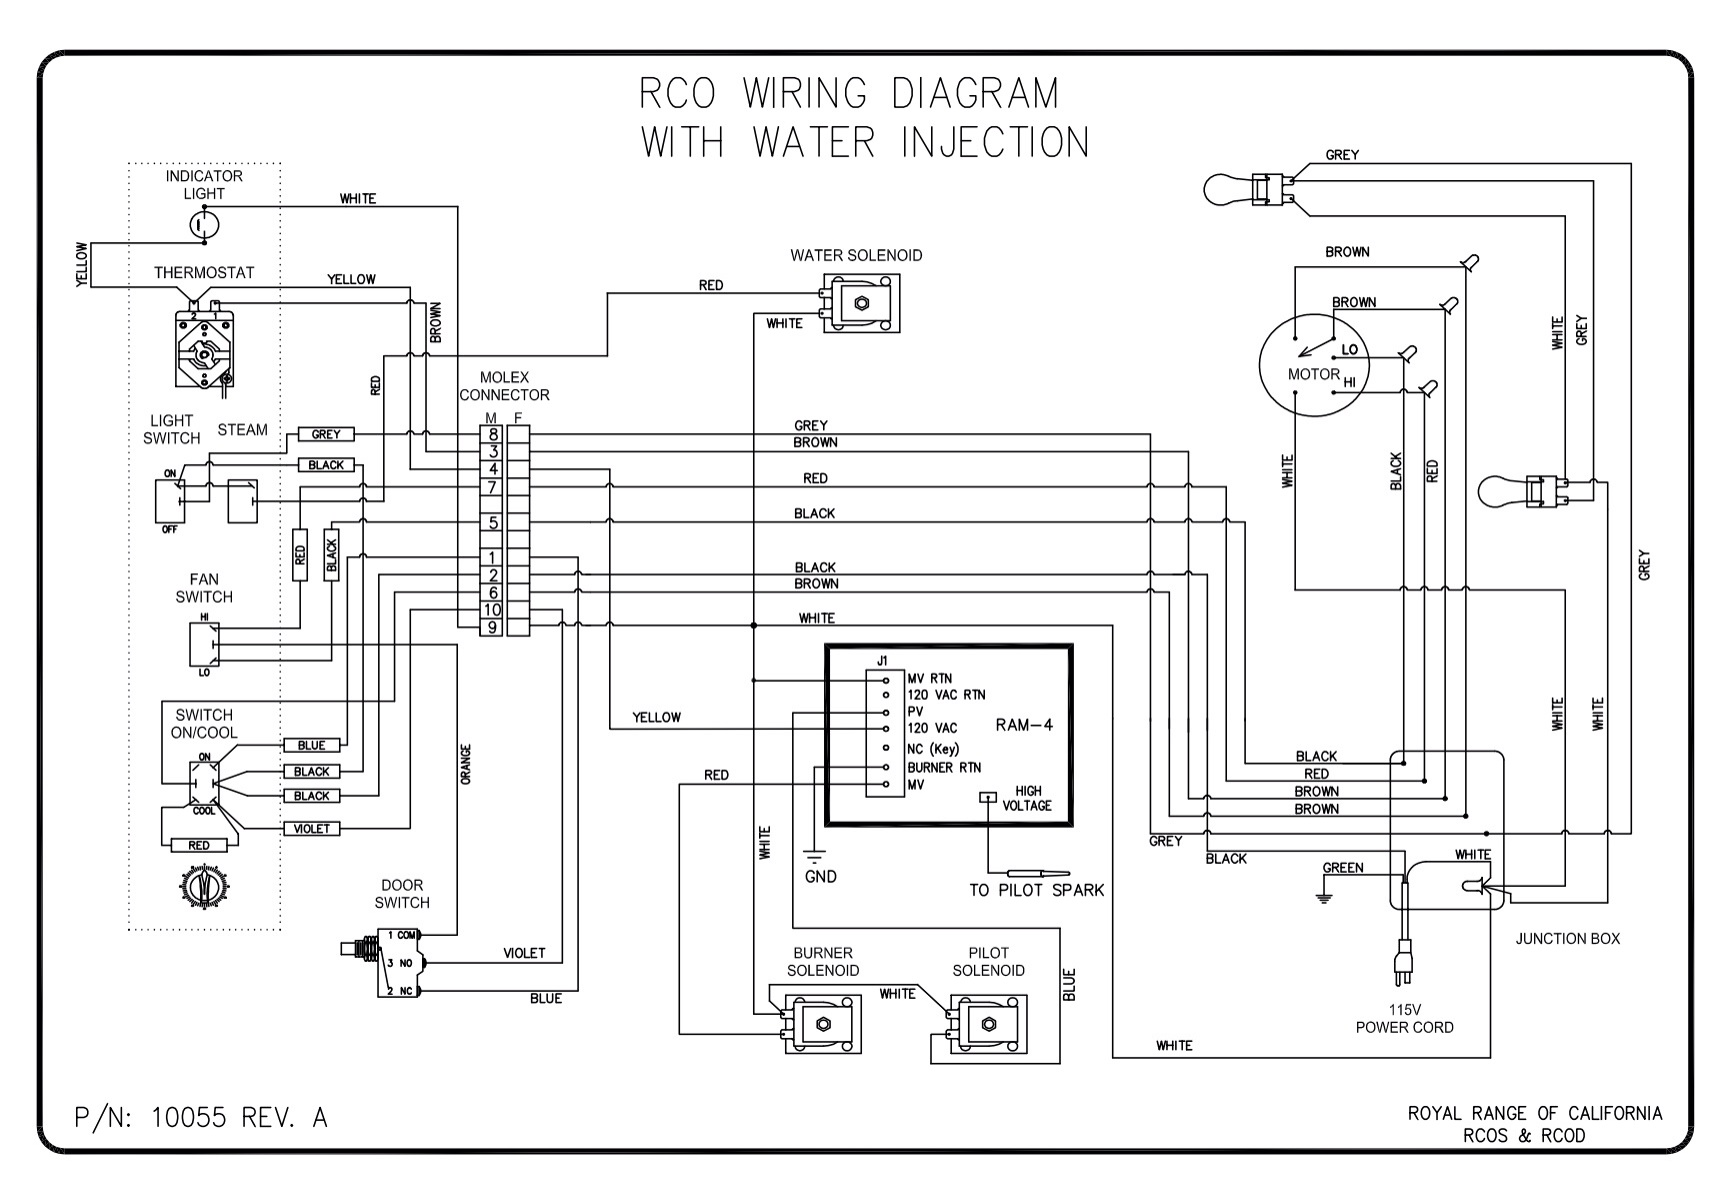 Hardwire Wiring Diagram For A 2 Element Countertop Stove